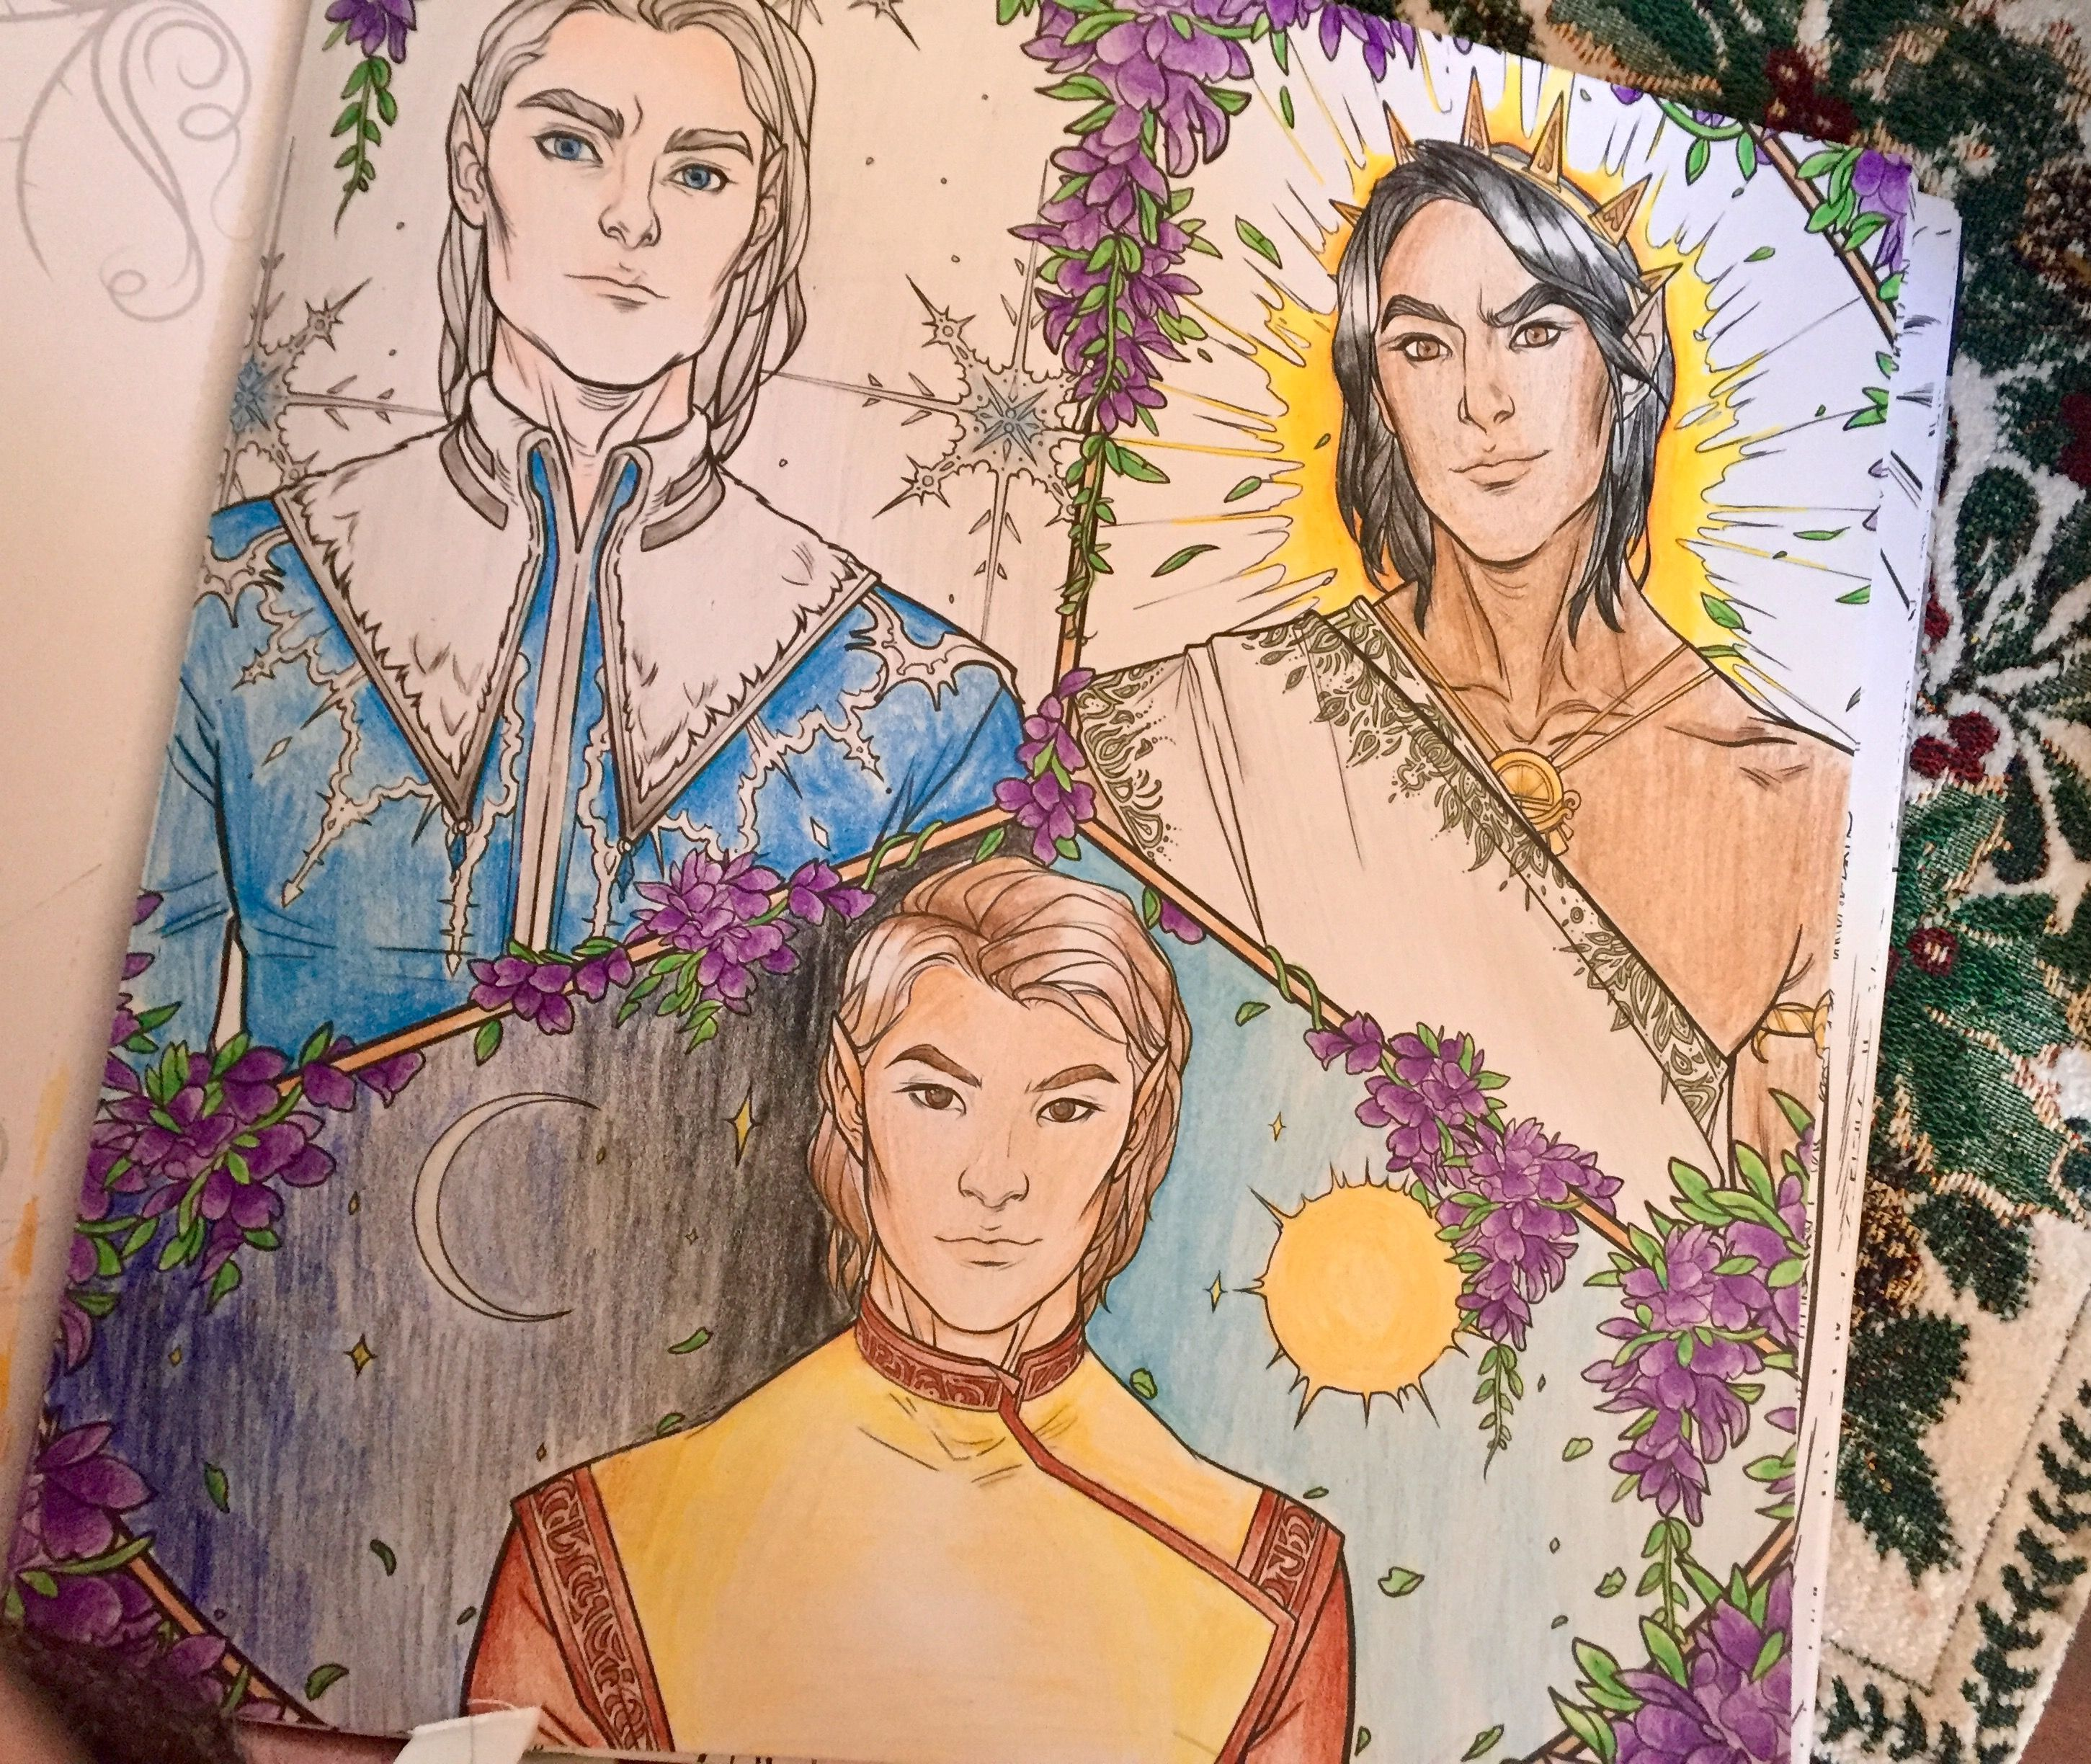 Pin By Icy249 On Throne Of Glass Acotar Coloring Book Art A